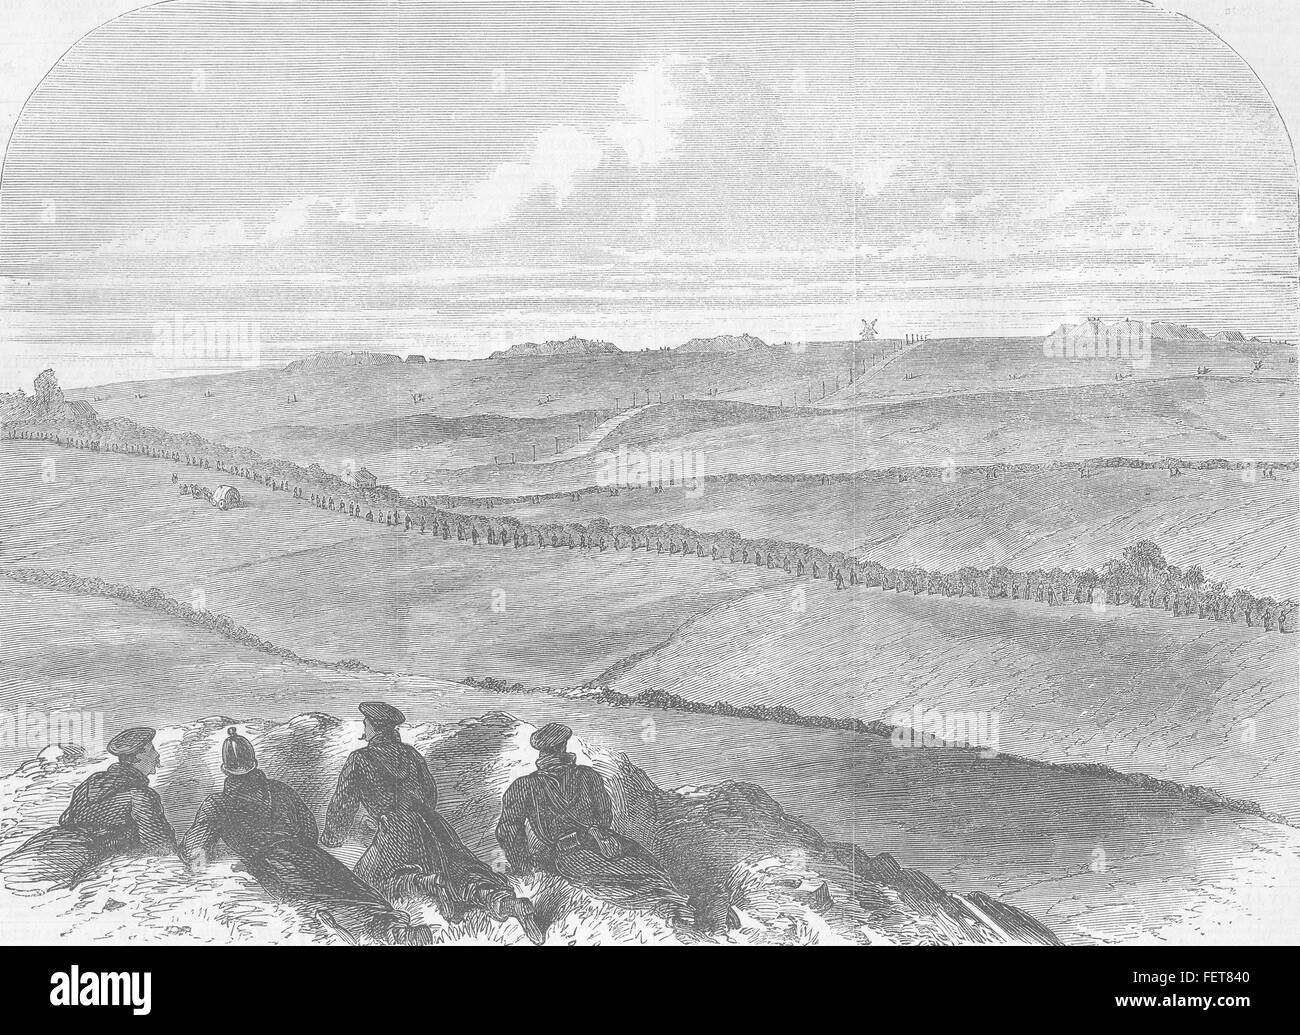 DENMARK Schleswig Forts at Dybbøl, Sentries 1864. Illustrated London News - Stock Image